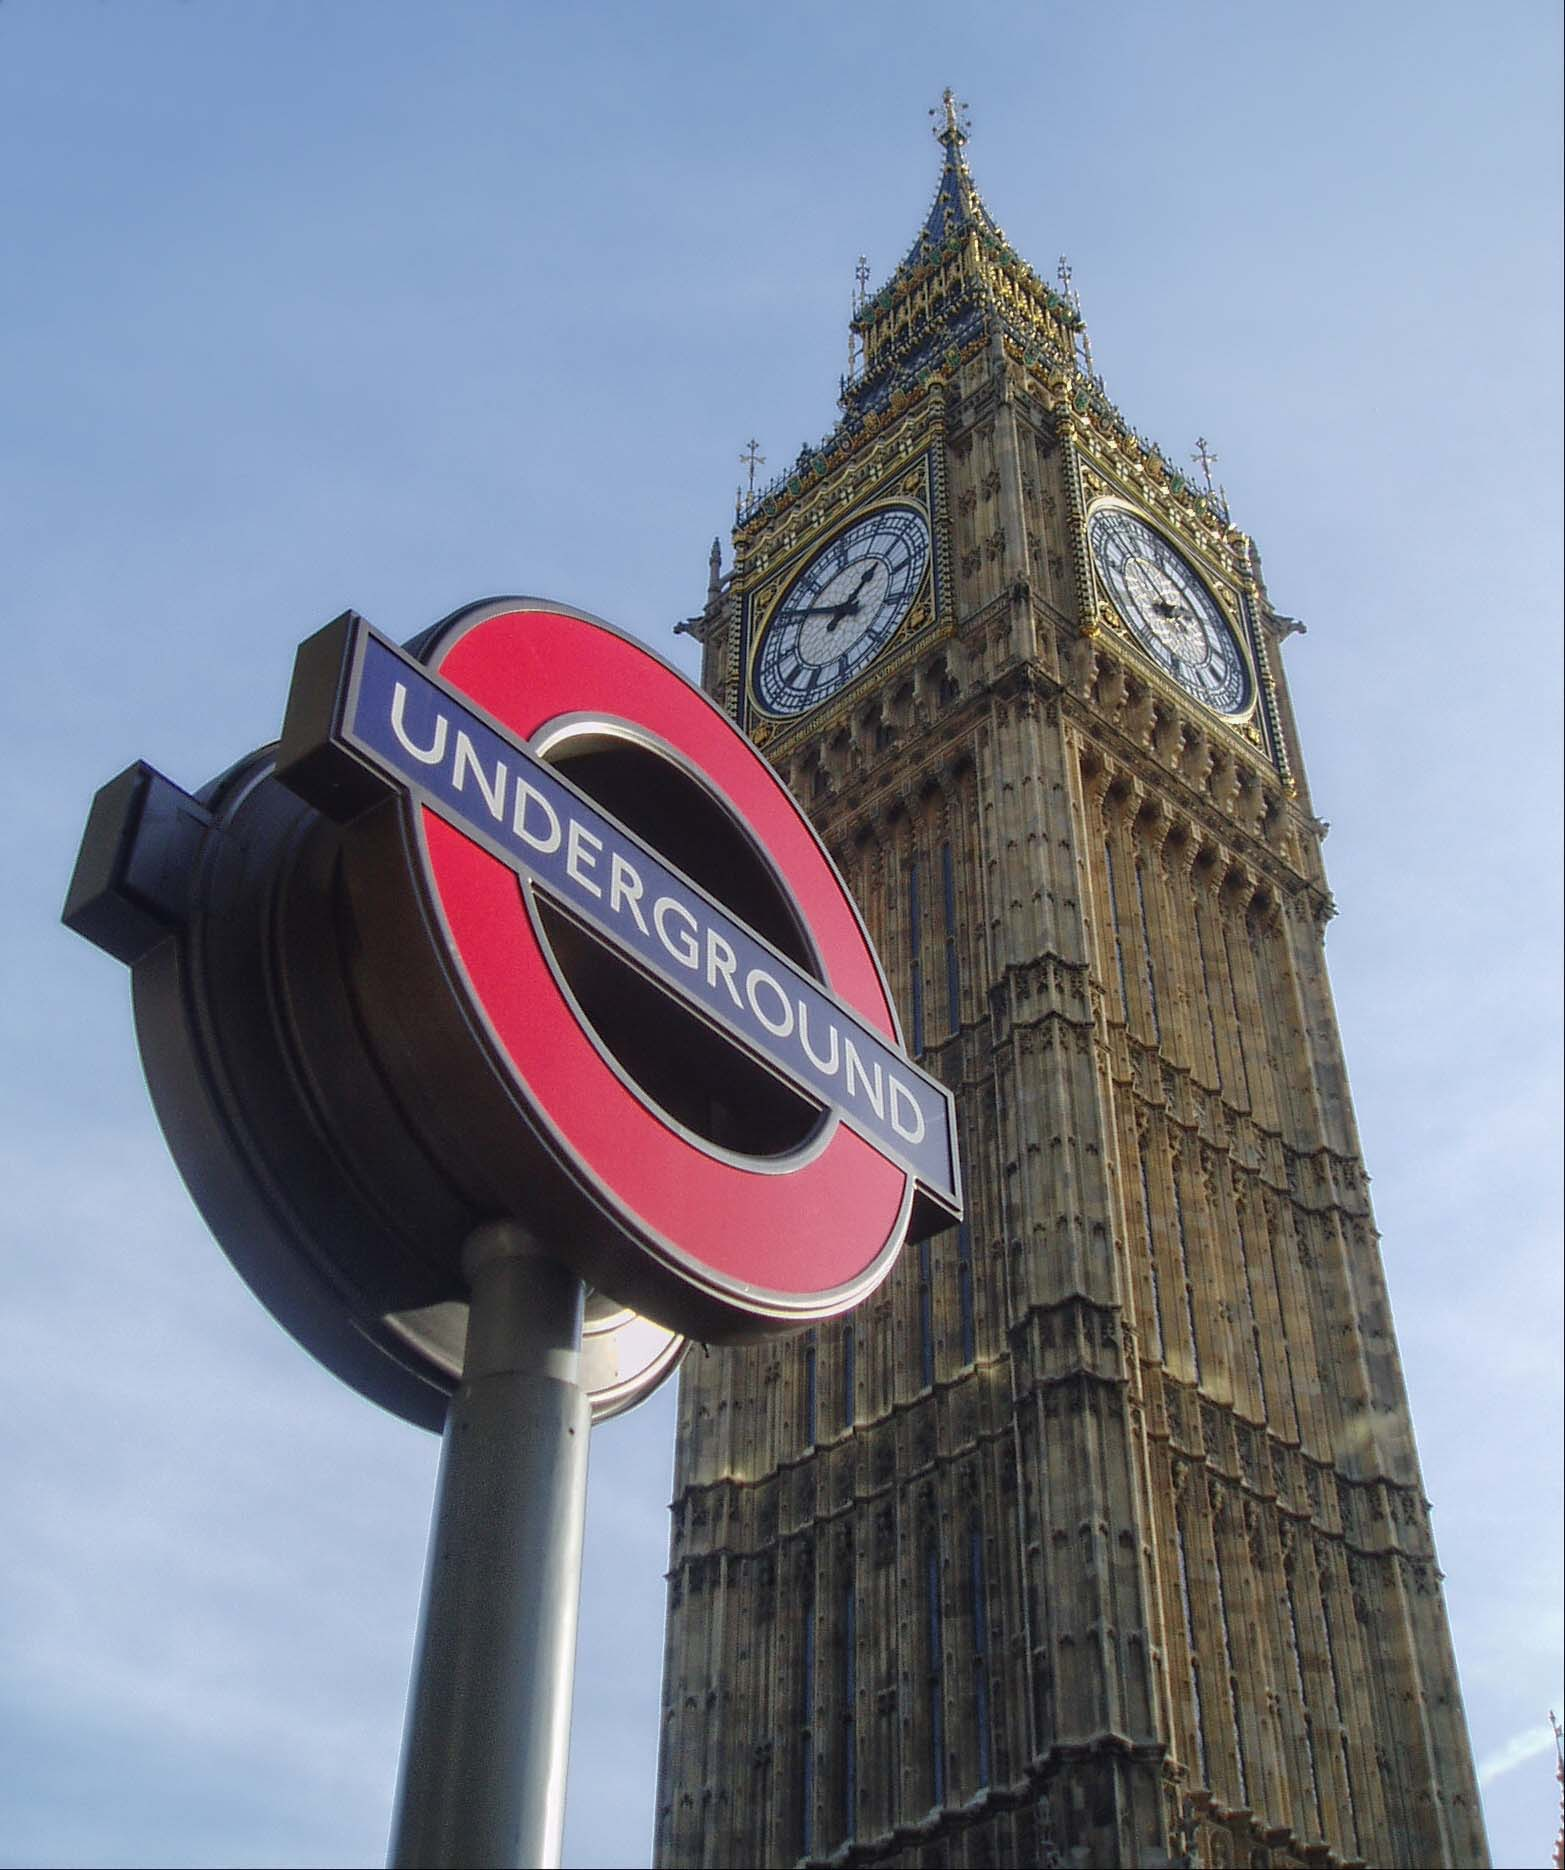 Underground sign and tall clock tower